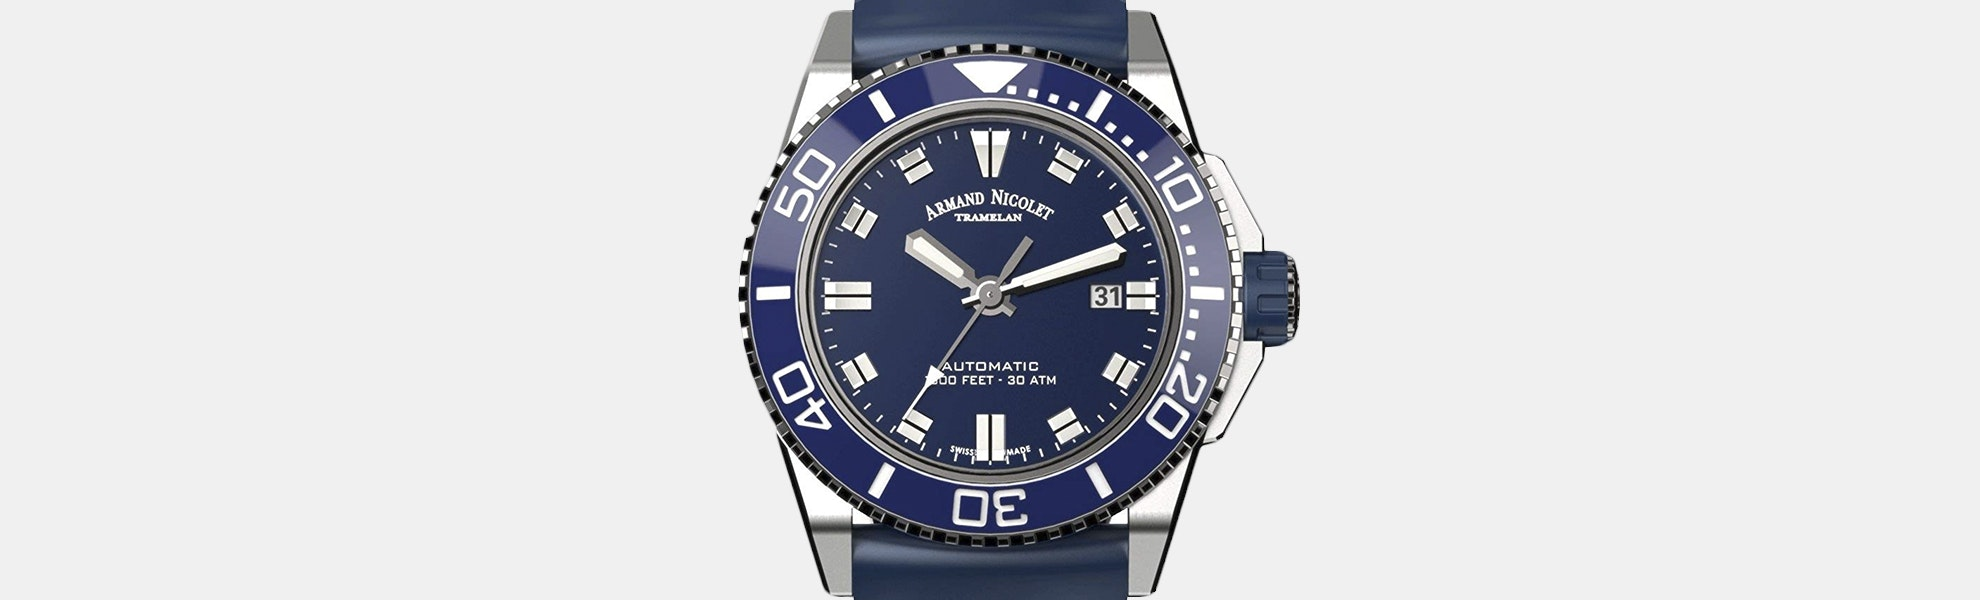 Armand Nicolet JS9 Automatic Watch